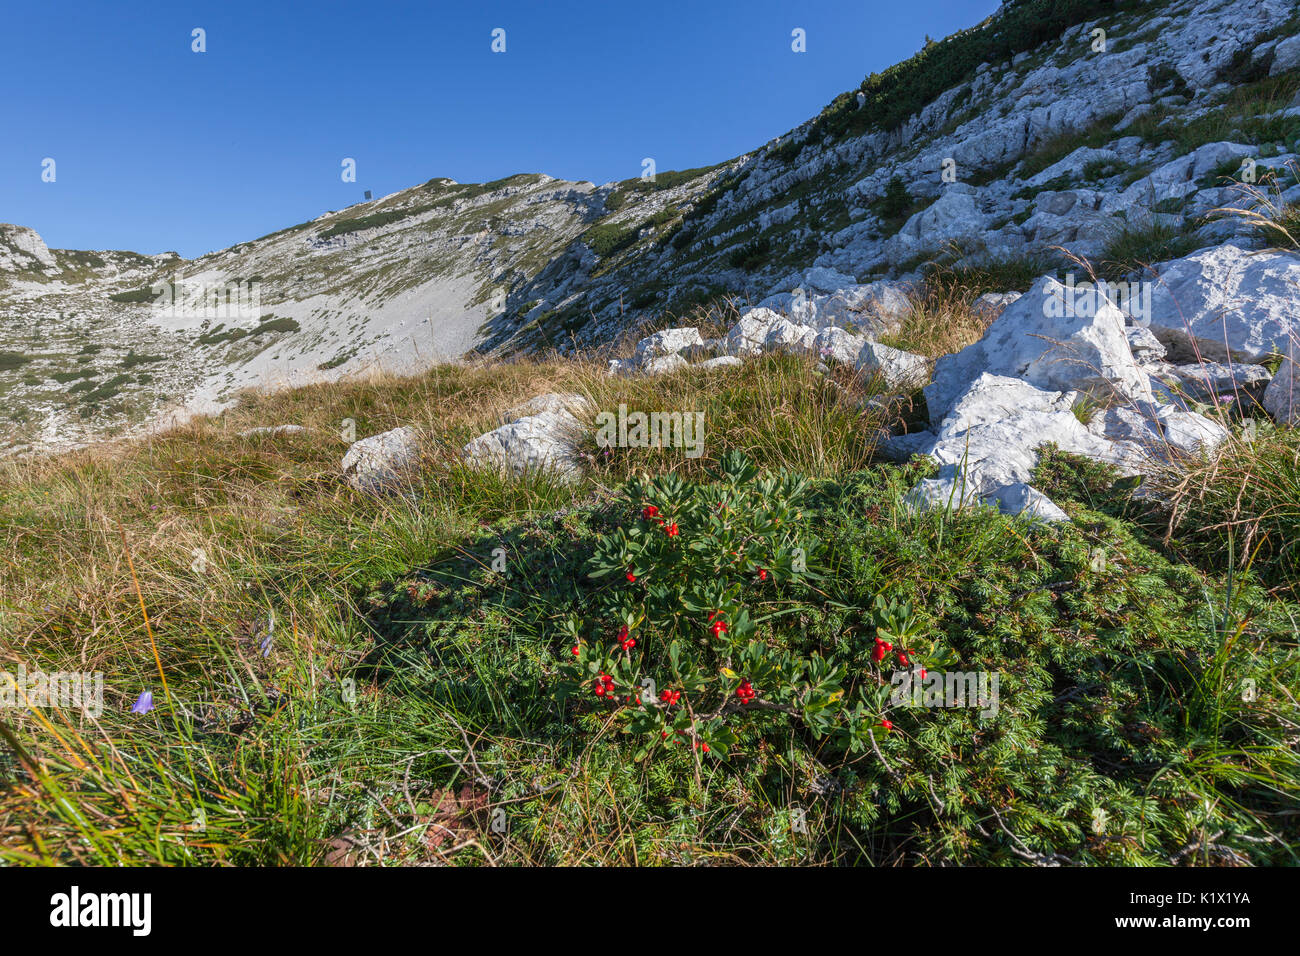 Europe, Italy, Veneto, Belluno. In the Alpe Ramezza along the Alta Via no. 2 of the Dolomites. On the background the Ramezza mountain. Belluno Dolomit - Stock Image